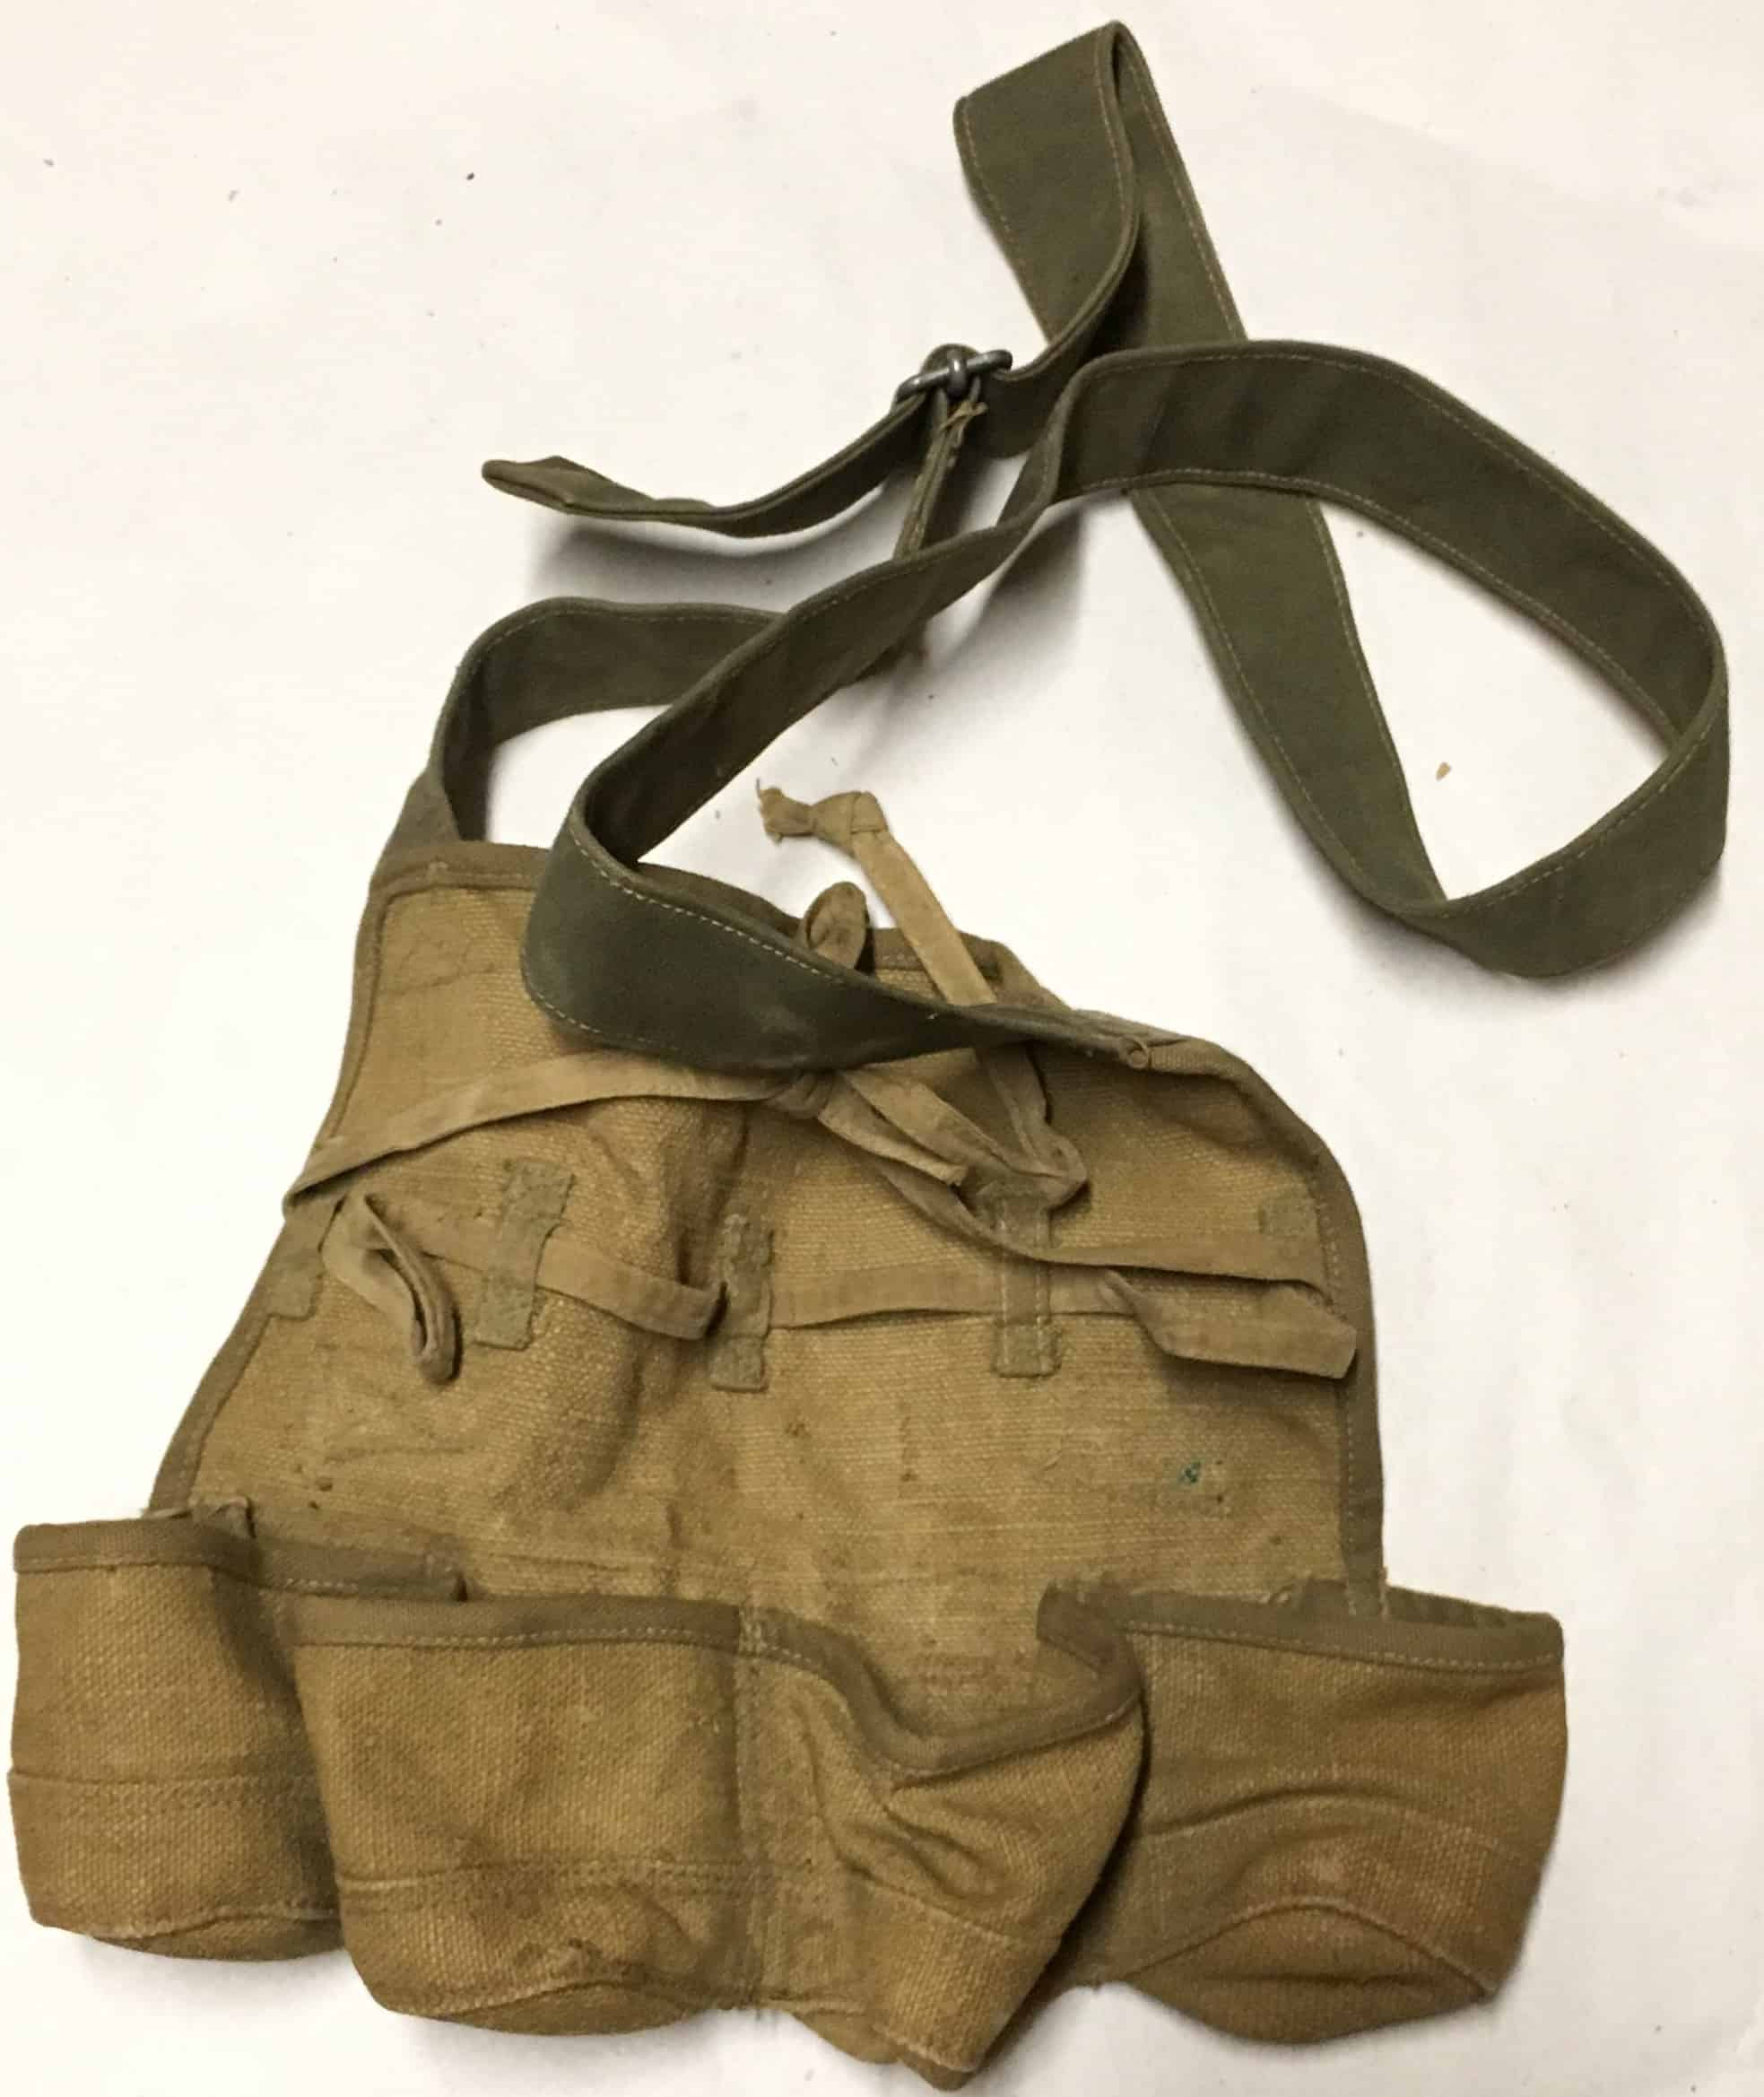 North Vietnamese Army Four Cell Long Stick Grenade Pouch with Tie Tie